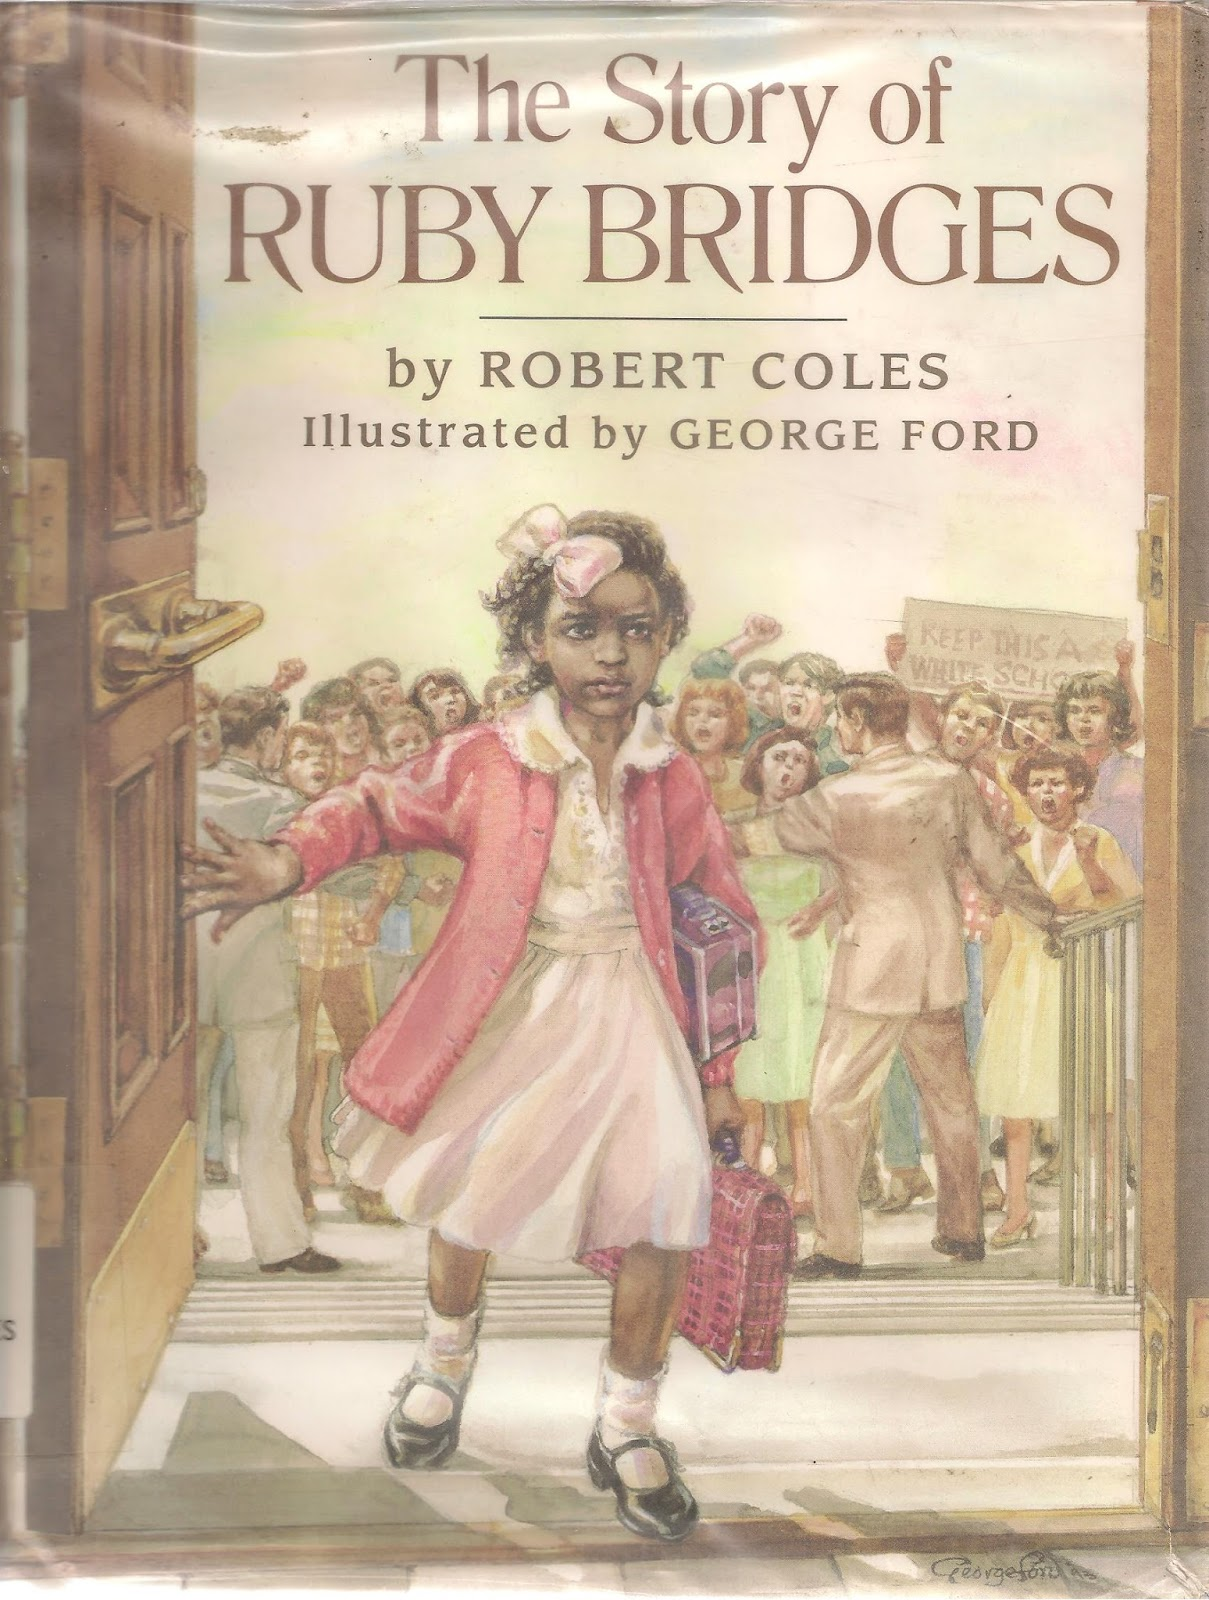 ruby bridges reflection The children's crusade: taking a stand for social justice  grade level: 4-8   ruby bridges: in 1960, six-year-old ruby bridges became the first african-american child to attend an all-  appendix e: ernest green's reflection on attending school at central high school  appendix f: ruby bridges reflections on attending frantz elementary.